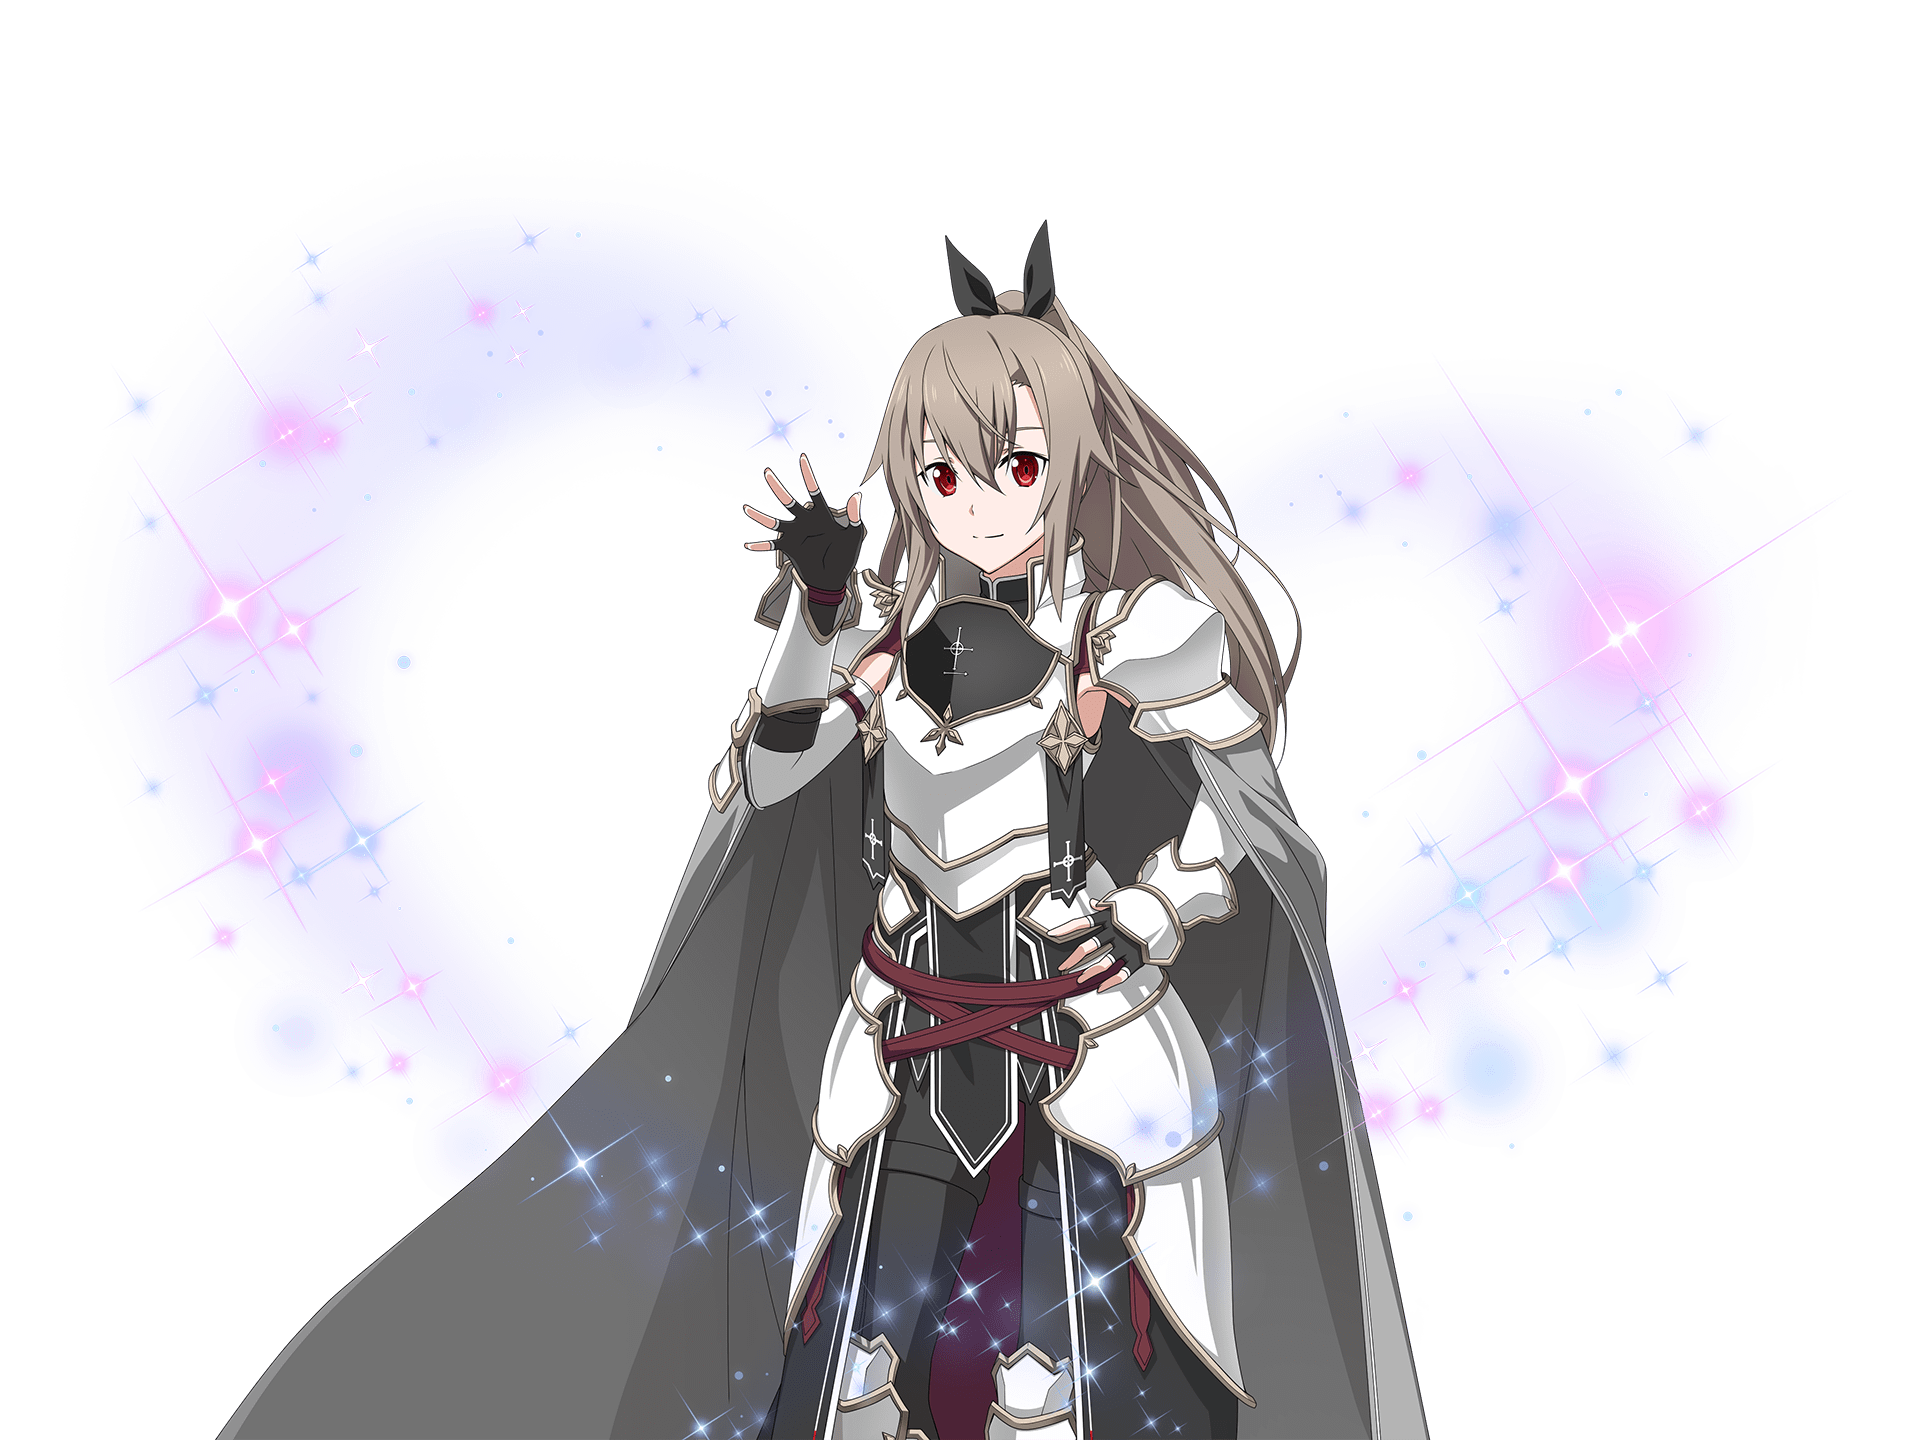 Waiting For You In The Skies Eydis New Unit Discussion Megathread A Bond Between Sisters Sao Risingsteel